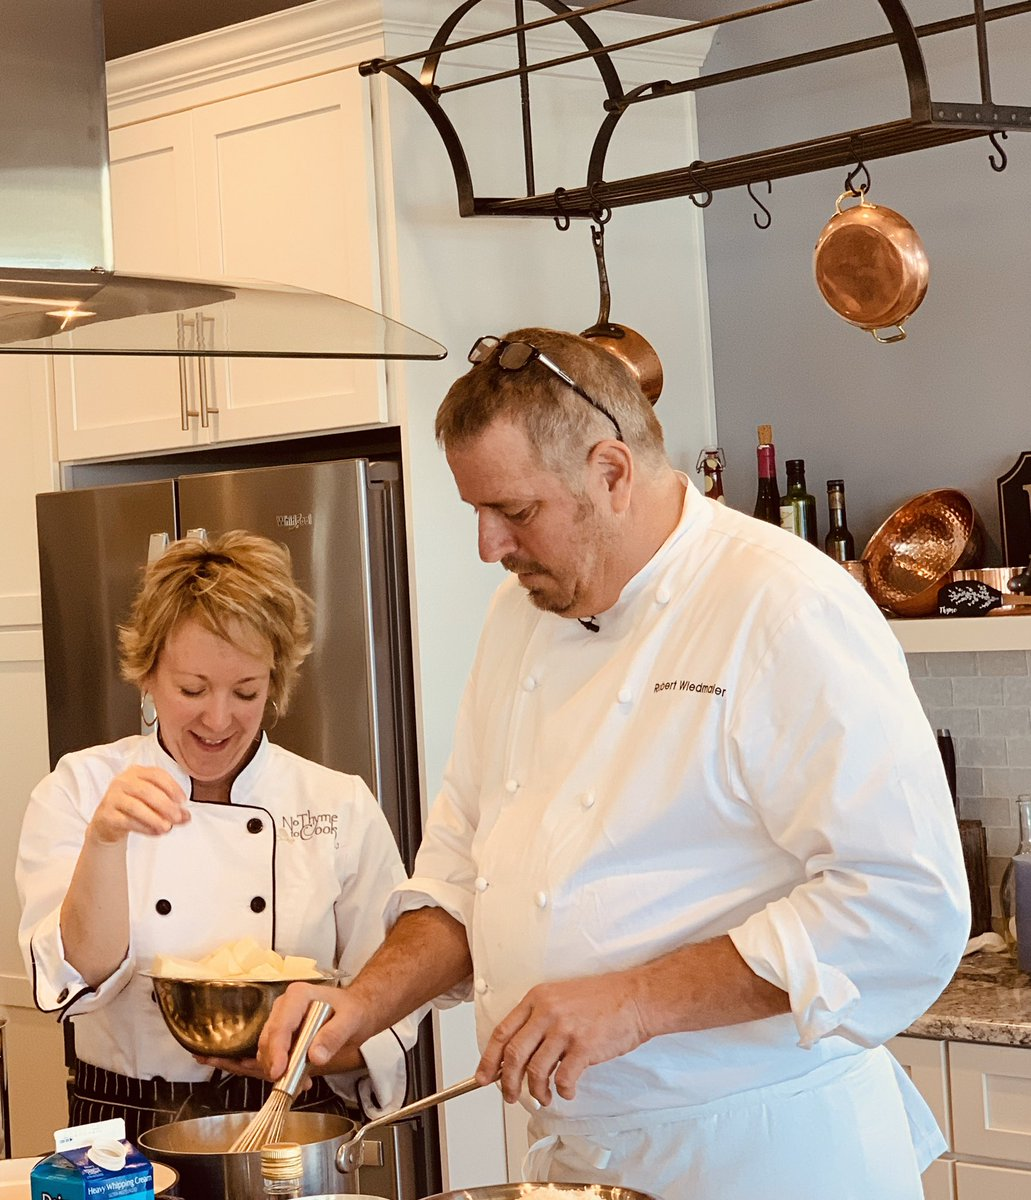 Gorgeous November day with #Michelin Chef Robert Wiedmaier  on #SolomonsIsland - #ChesapeakeBay at cooking school No Thyme To Cook. @rw_restaurant_group @NoThymeToCook – at Solomons Island